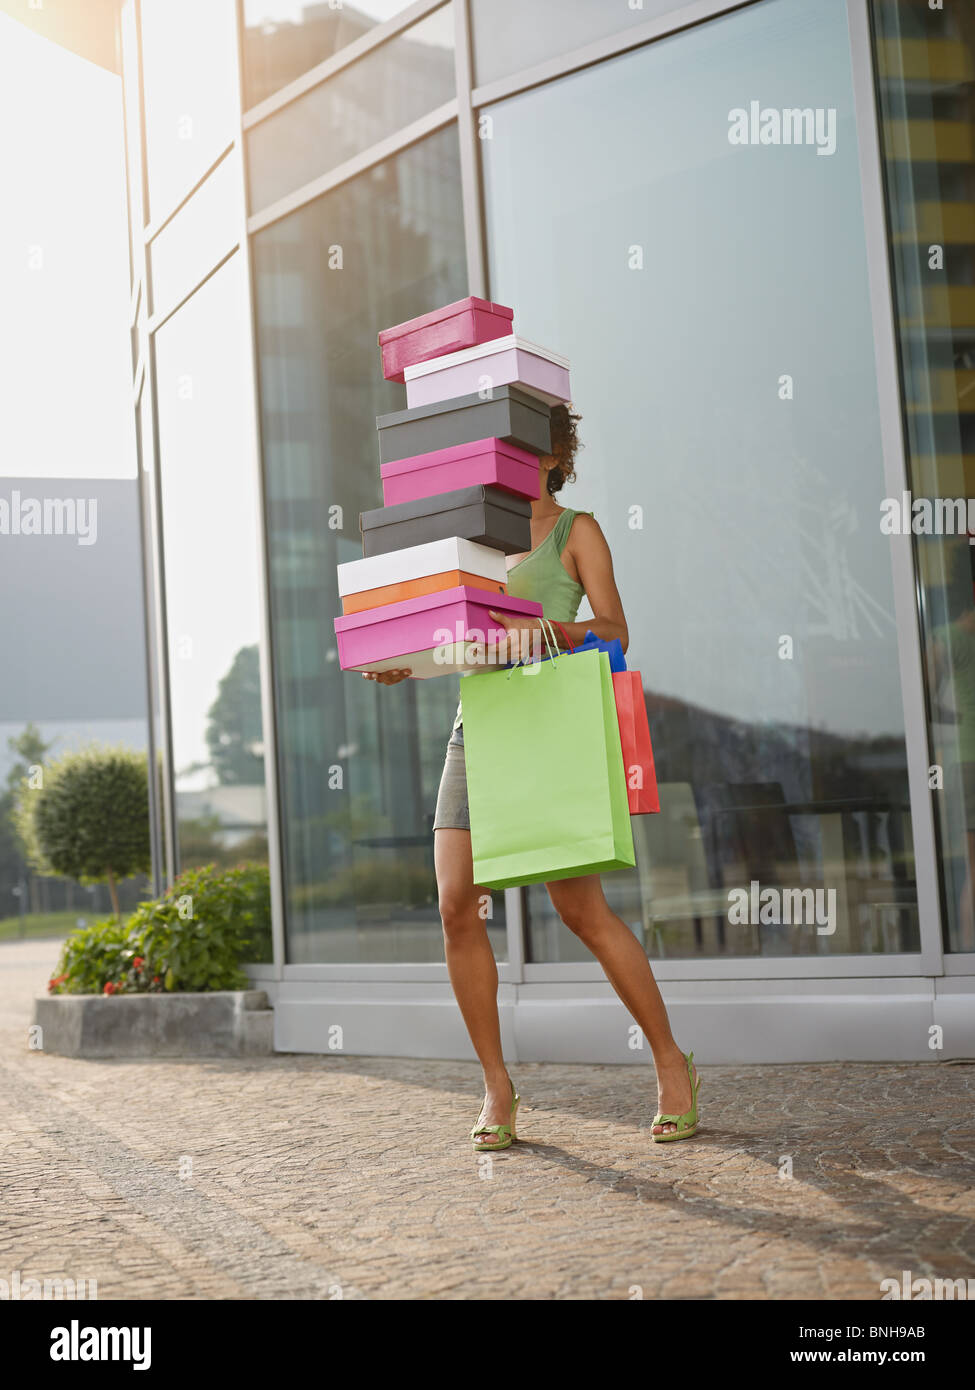 hispanic woman balancing stack of shoe boxes out of shopping center. Vertical shape, full length, copy space - Stock Image